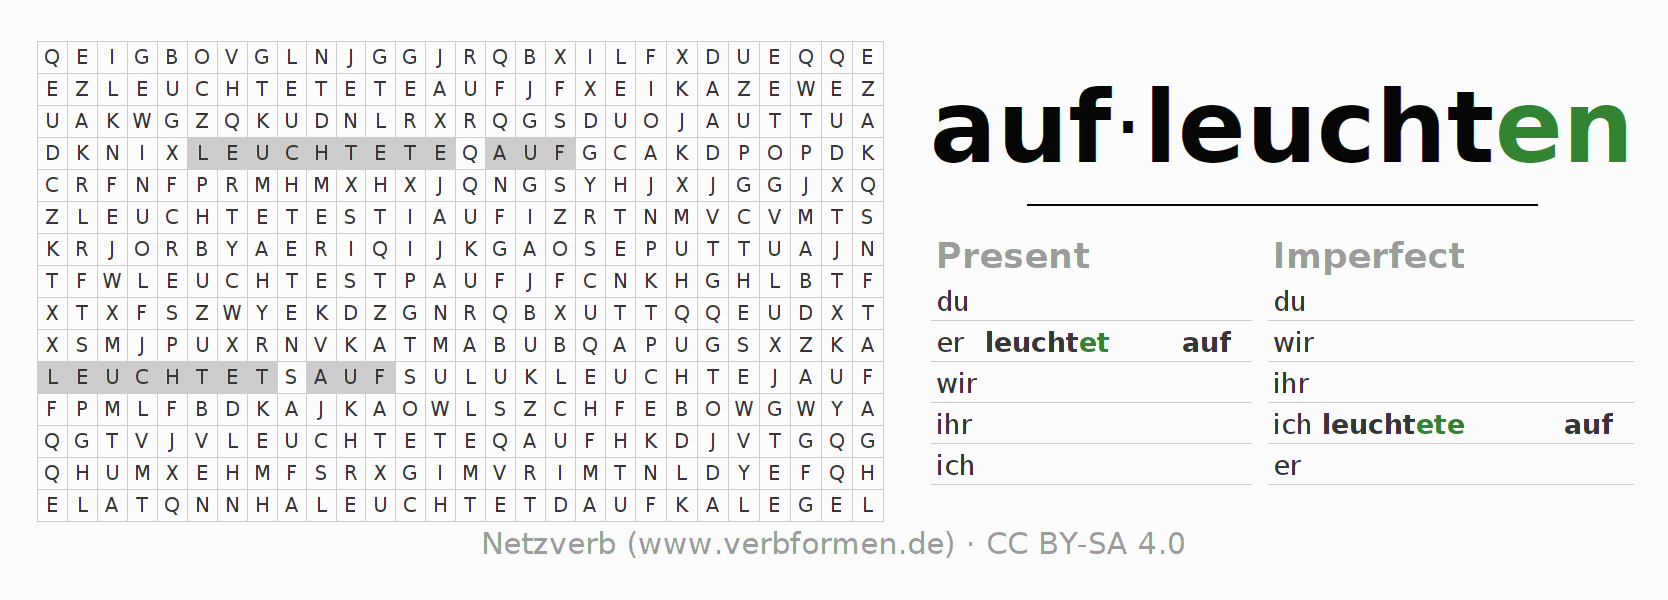 Word search puzzle for the conjugation of the verb aufleuchten (hat)